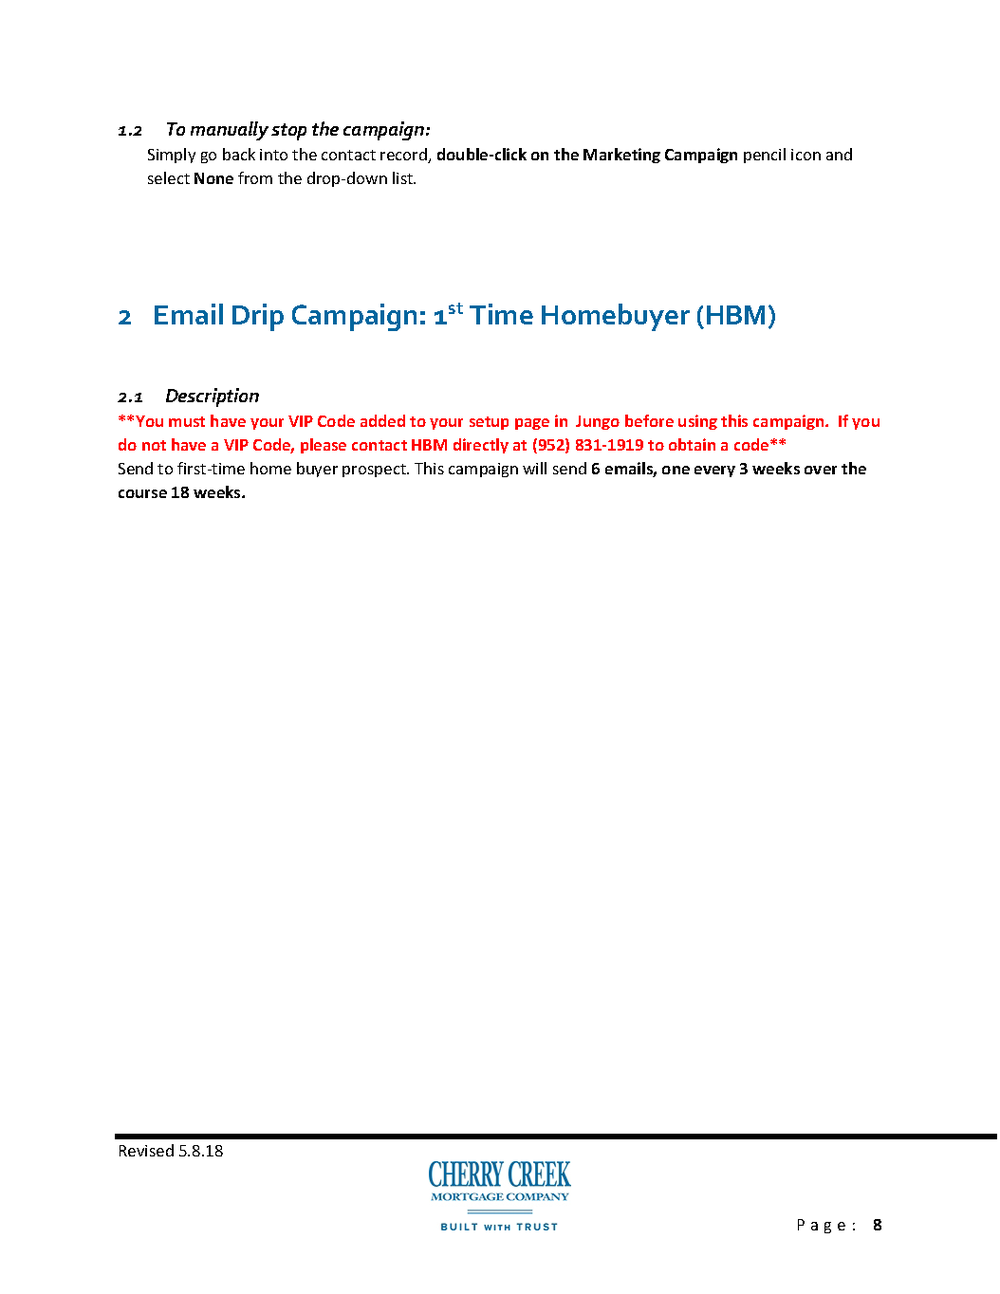 Jungo_Email_Drip_Campaigns-Consumers_D1O6plI_Page_008.png